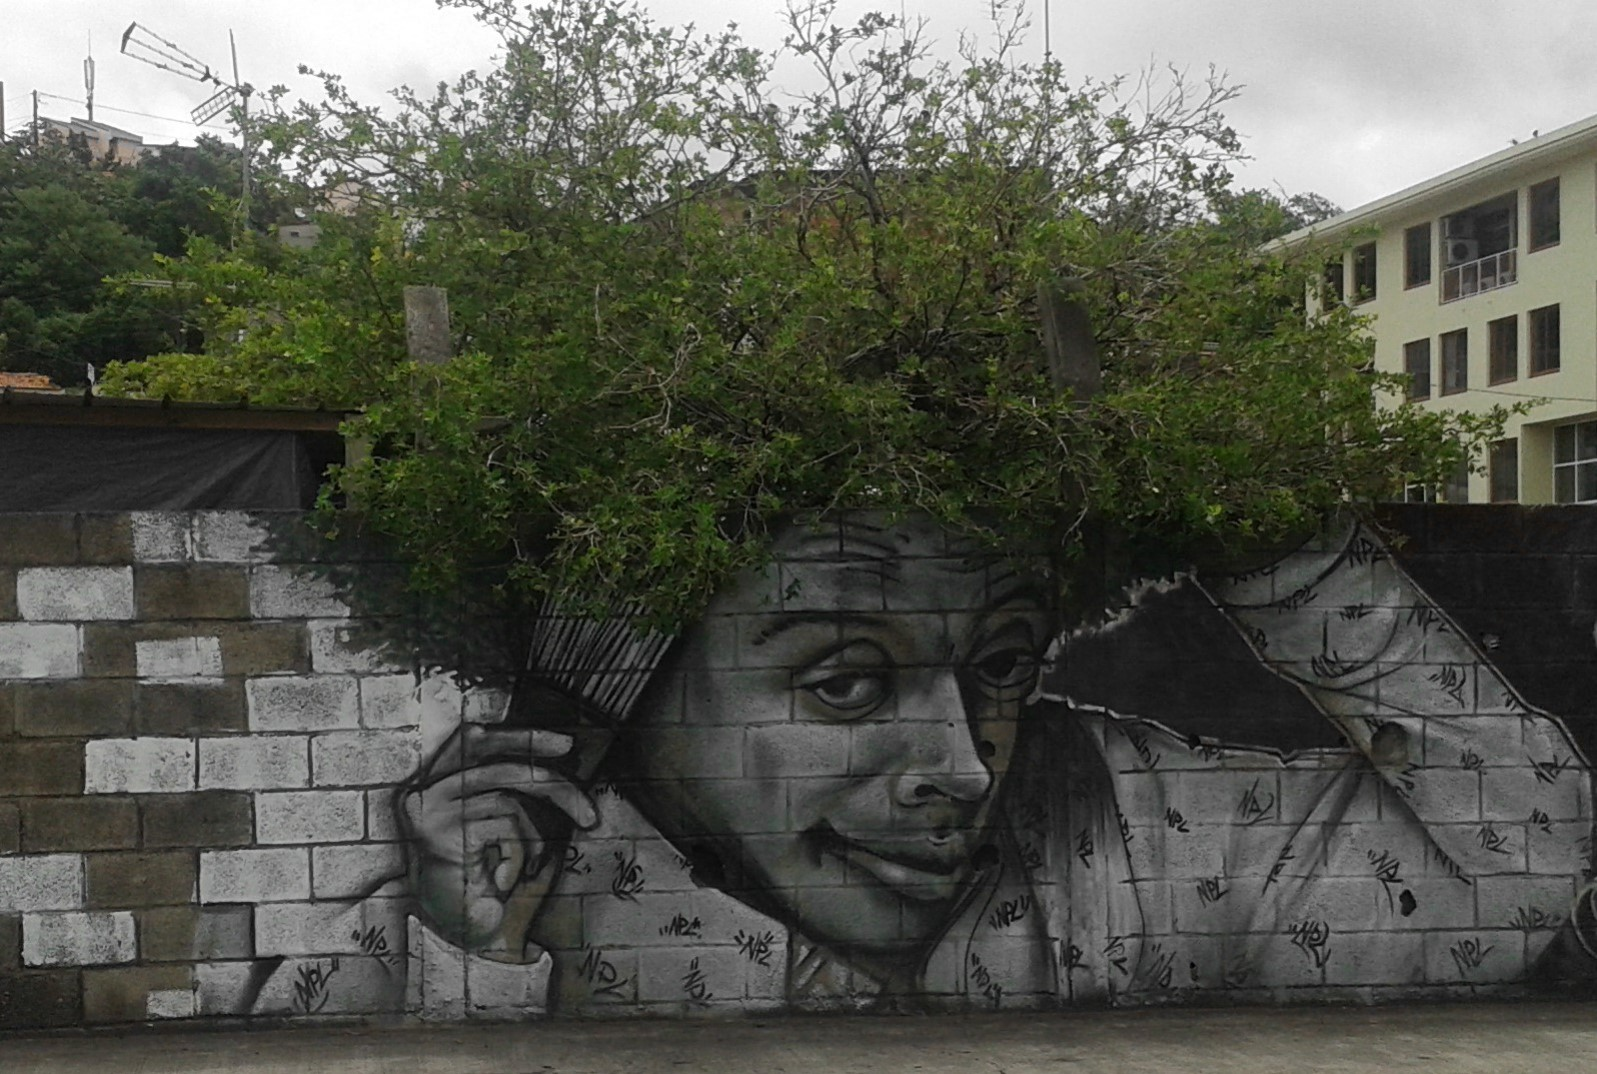 nuxuno xan spike lee cheveux arbre martinique street art